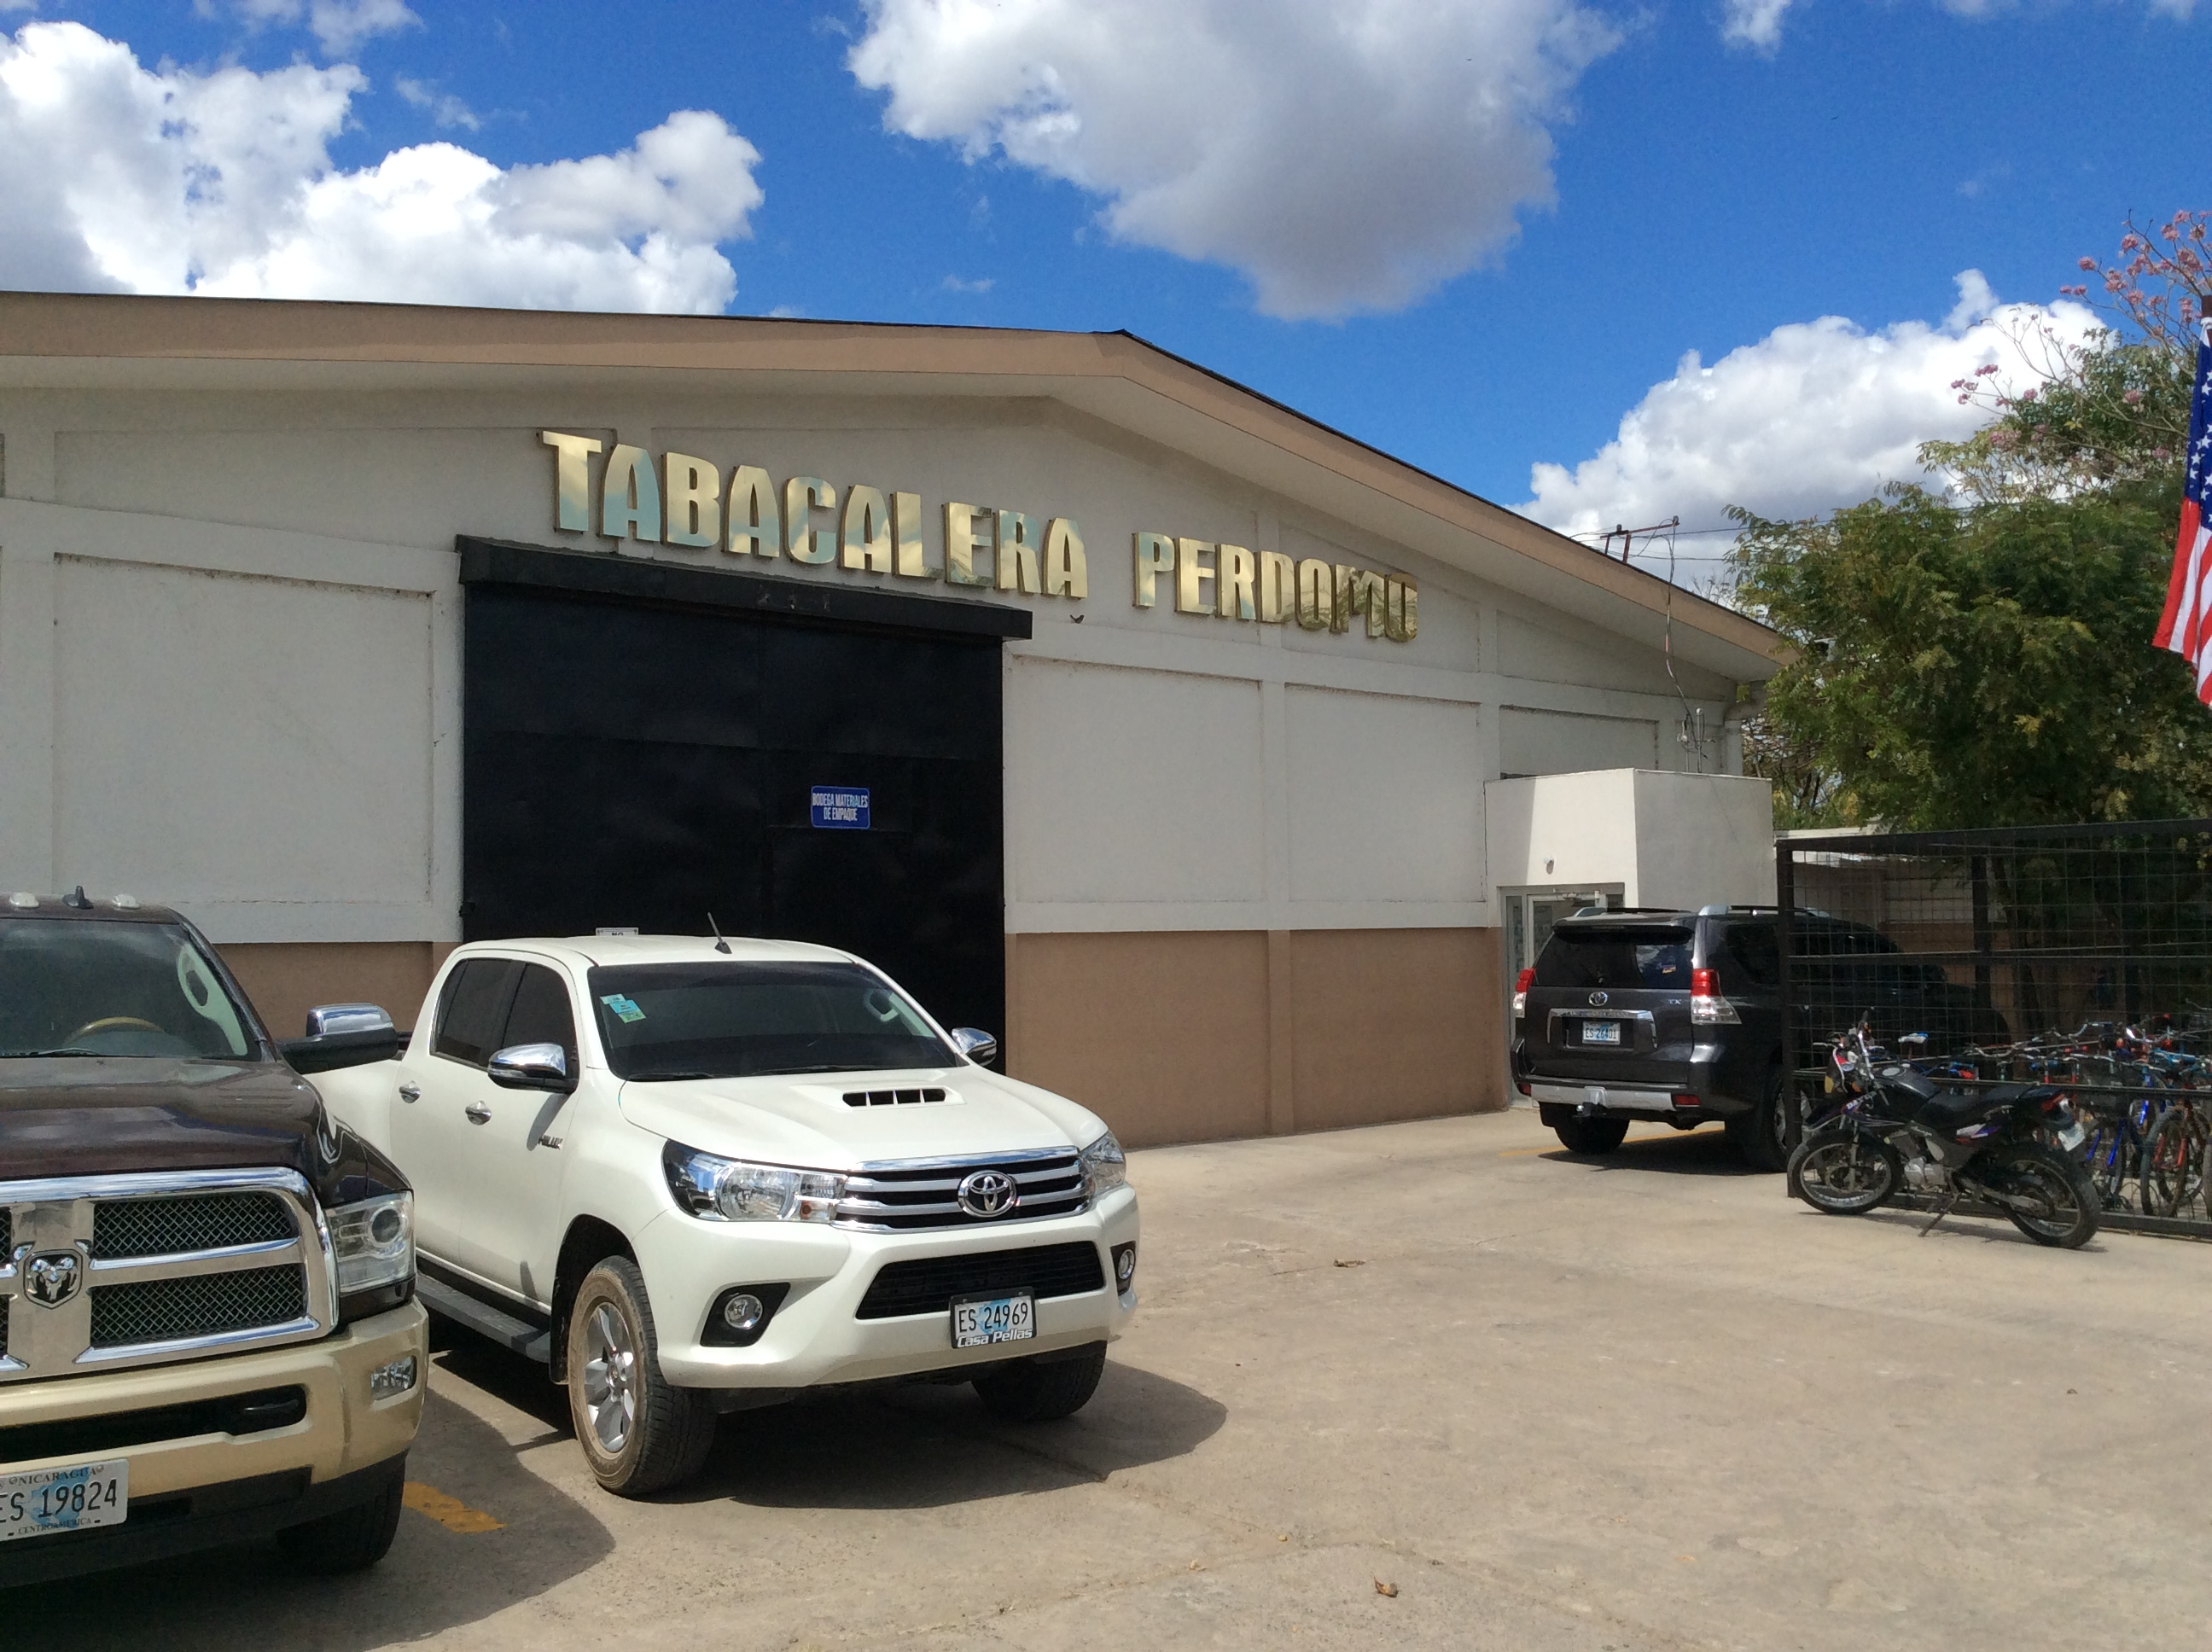 The Blog: Perdomo Tour – Day Three